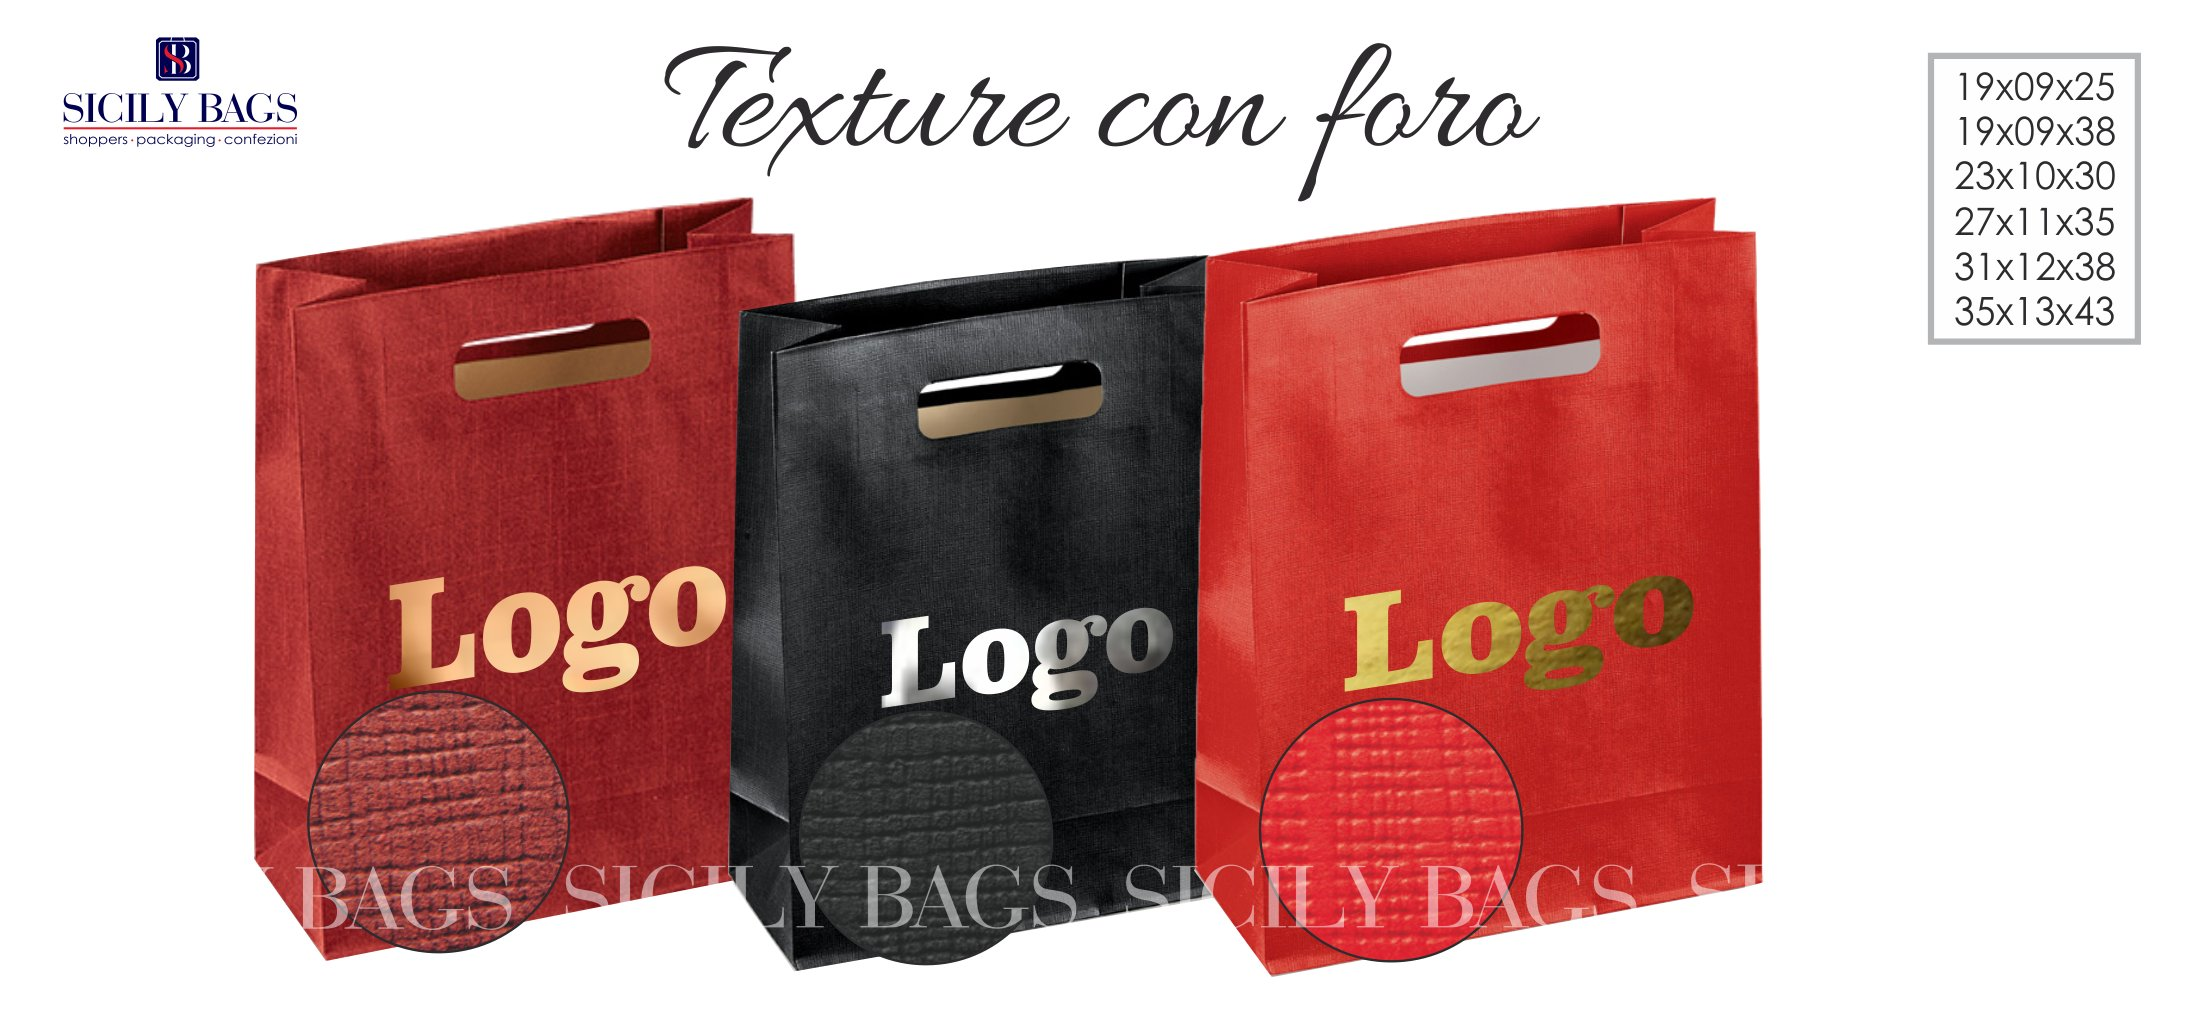 shopper negozi, buste per negozi, shopper, buste in carta, buste personalizzate, stampare buste, sacchetti negozi, borse negozi, buste stampa a caldo, shoppers negozi, shoppers personalizzate, buste con logo, buste per negozi, produttori buste, produttori shoppers, produttori sacchetti, buste con foro, buste fustellate, shopper con foro, shopper fustellate, buste rosse, busta nera